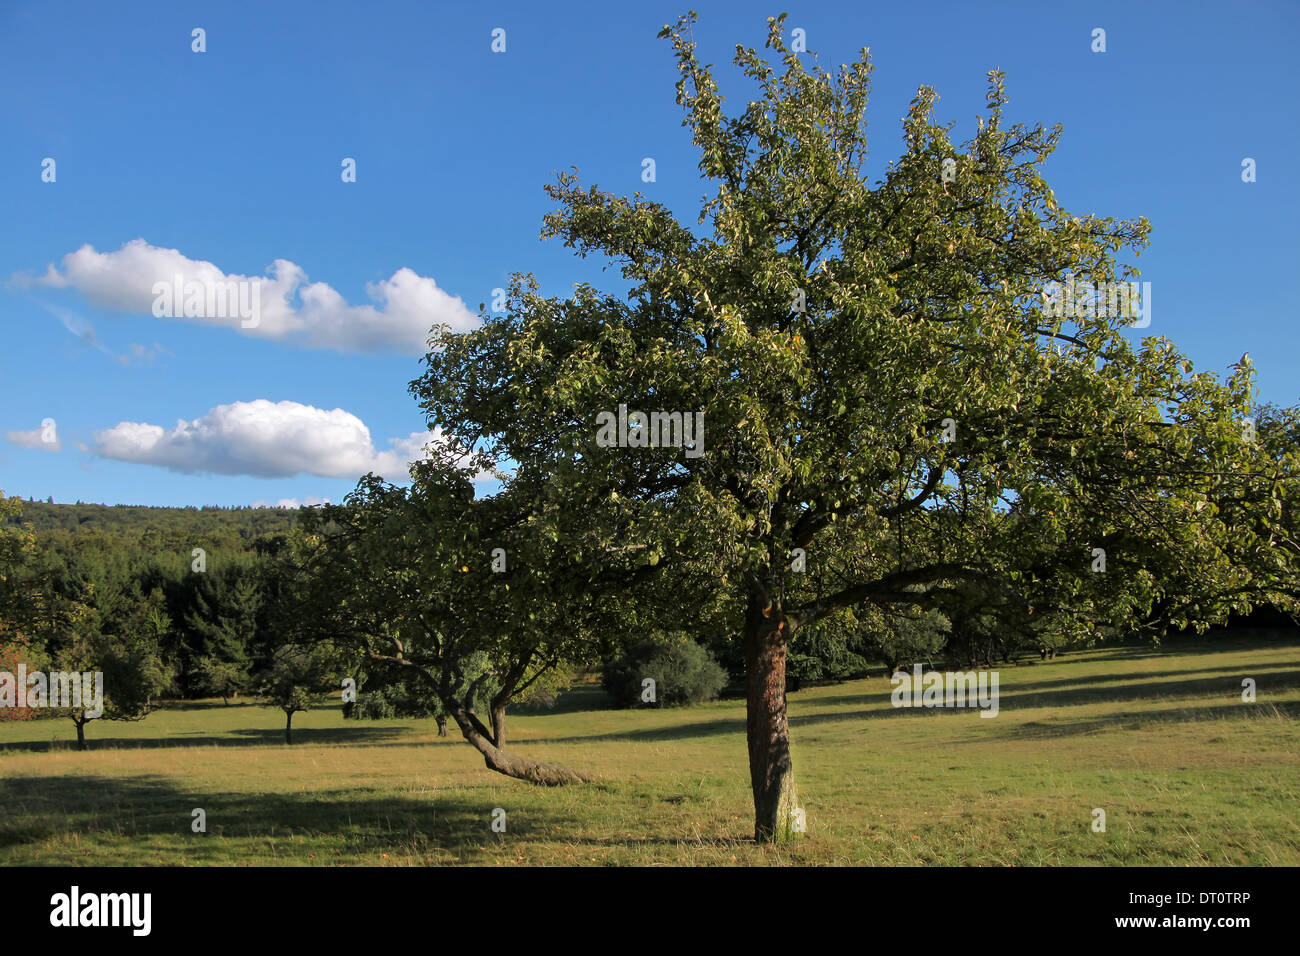 Old fruit tree in Orchard in summer time in Germany - Stock Image